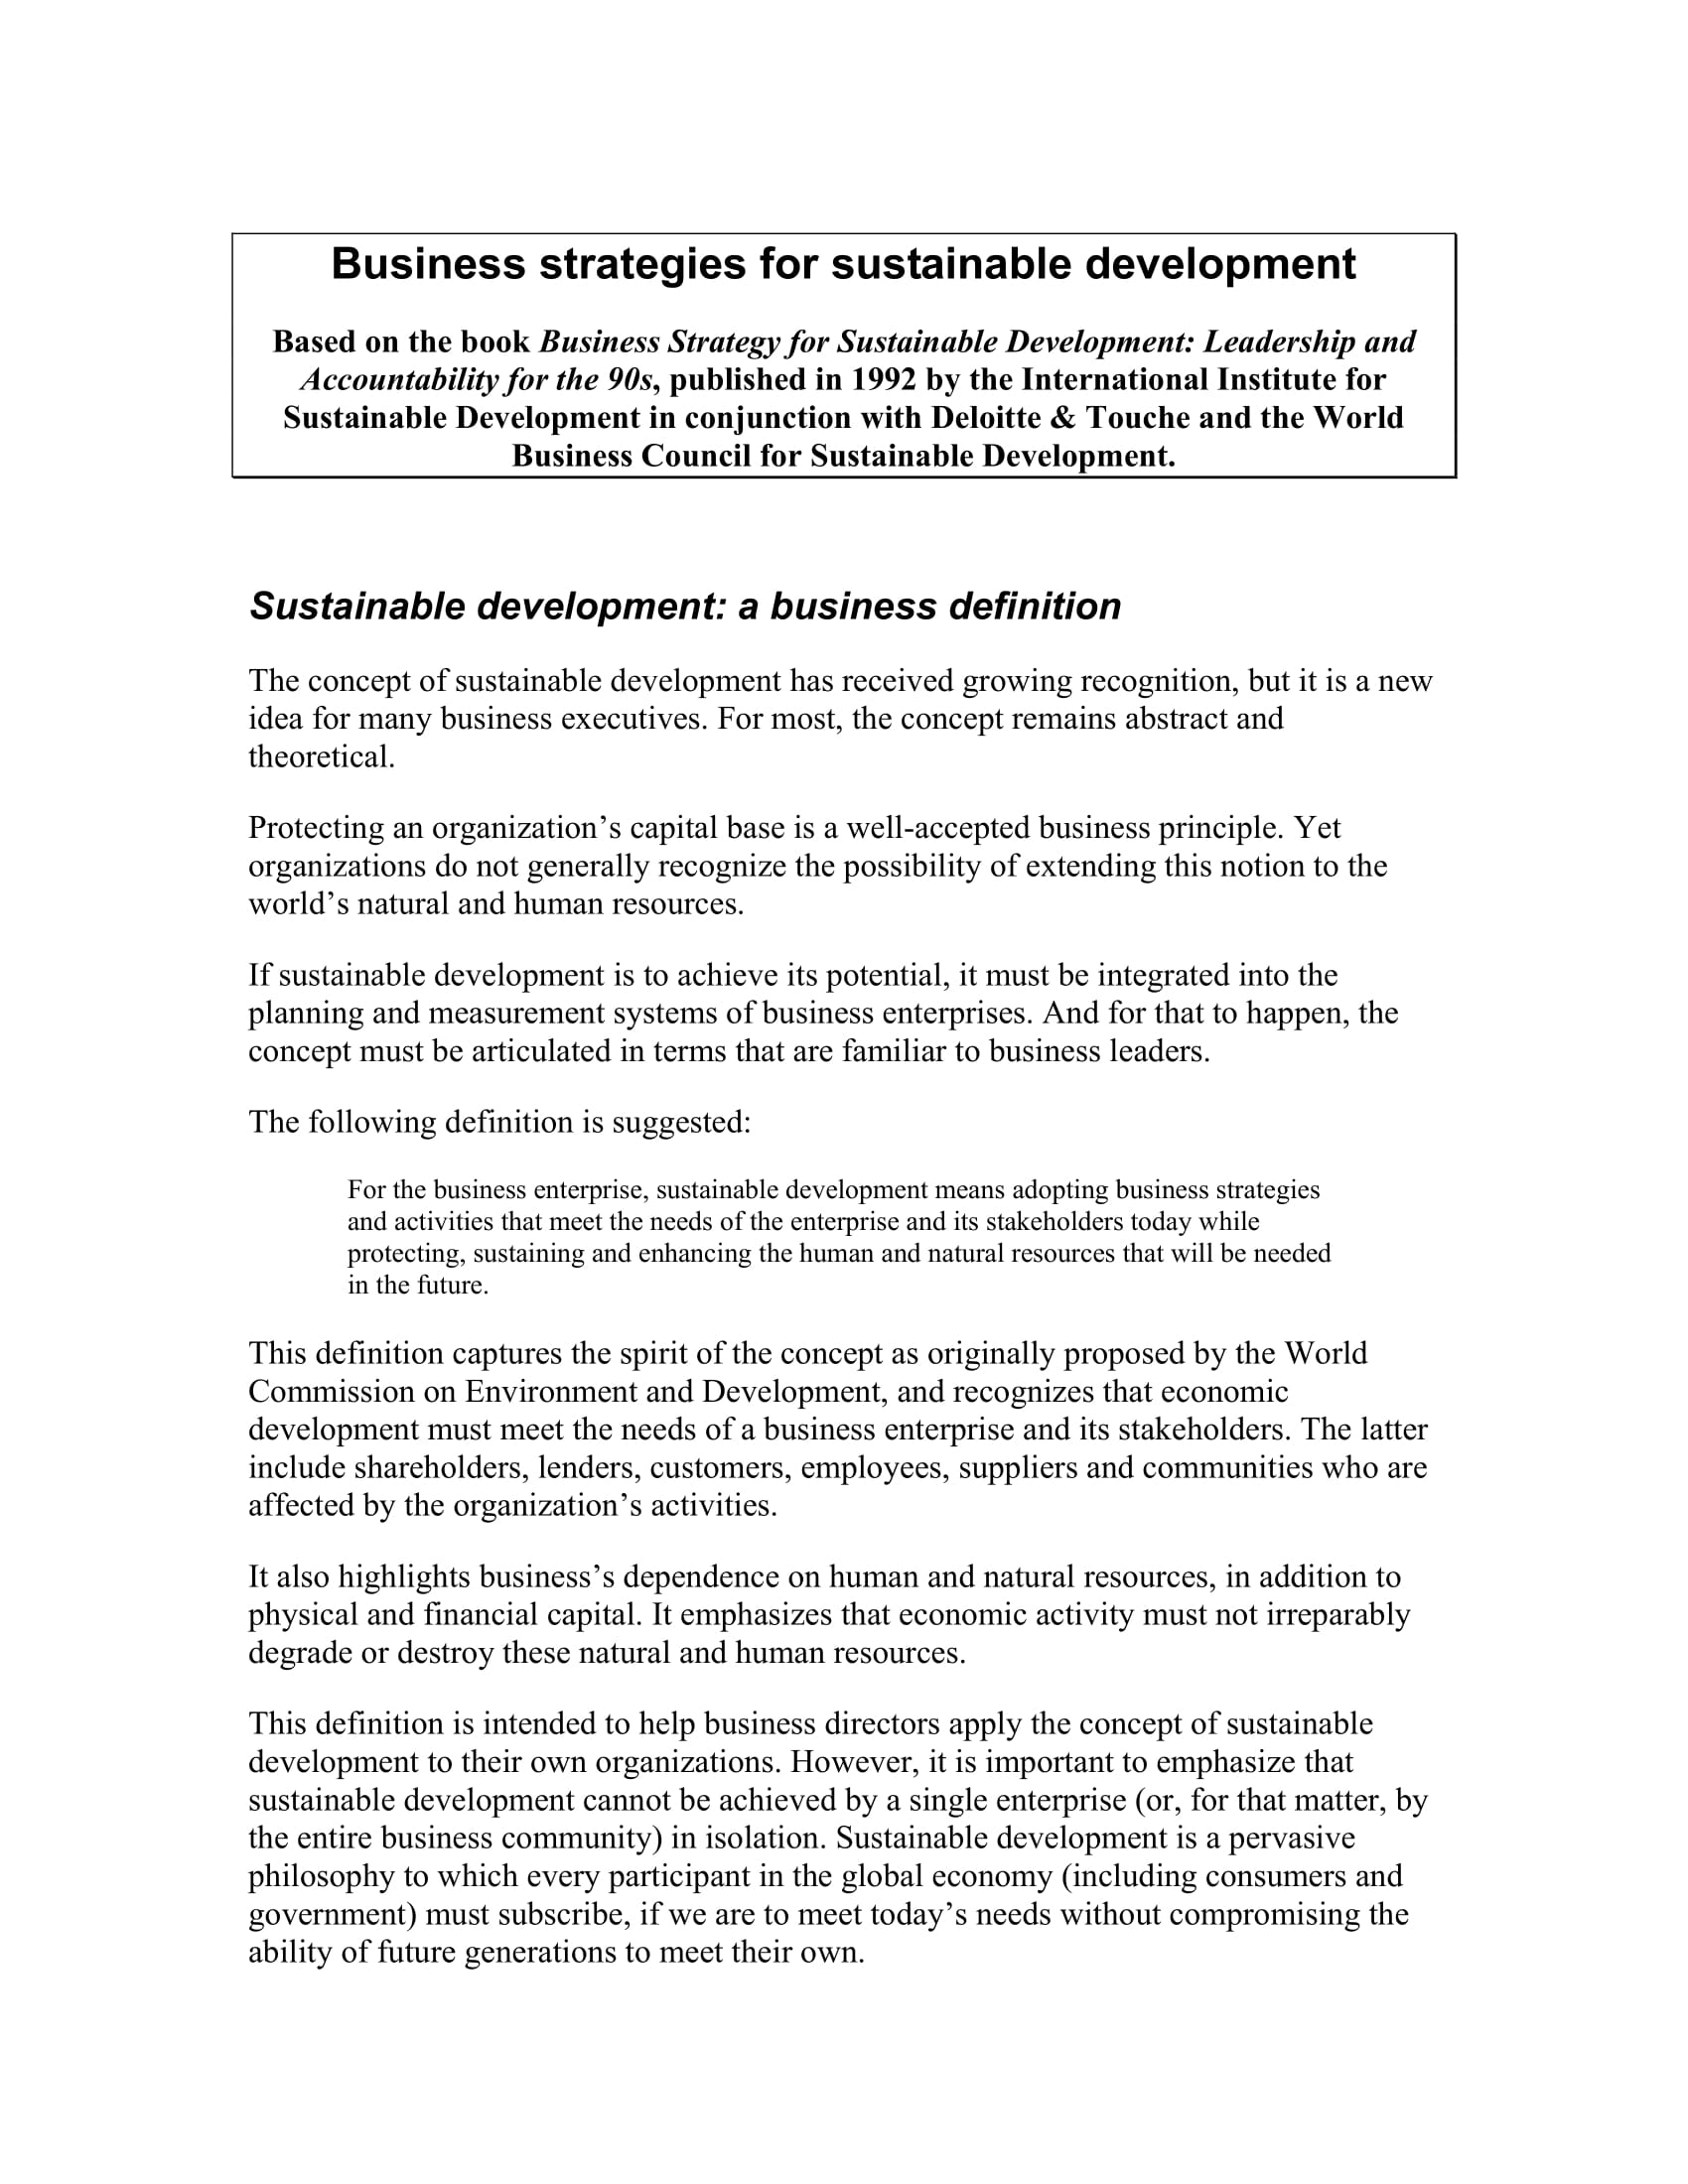 planning business strategies for sustainable development example 01